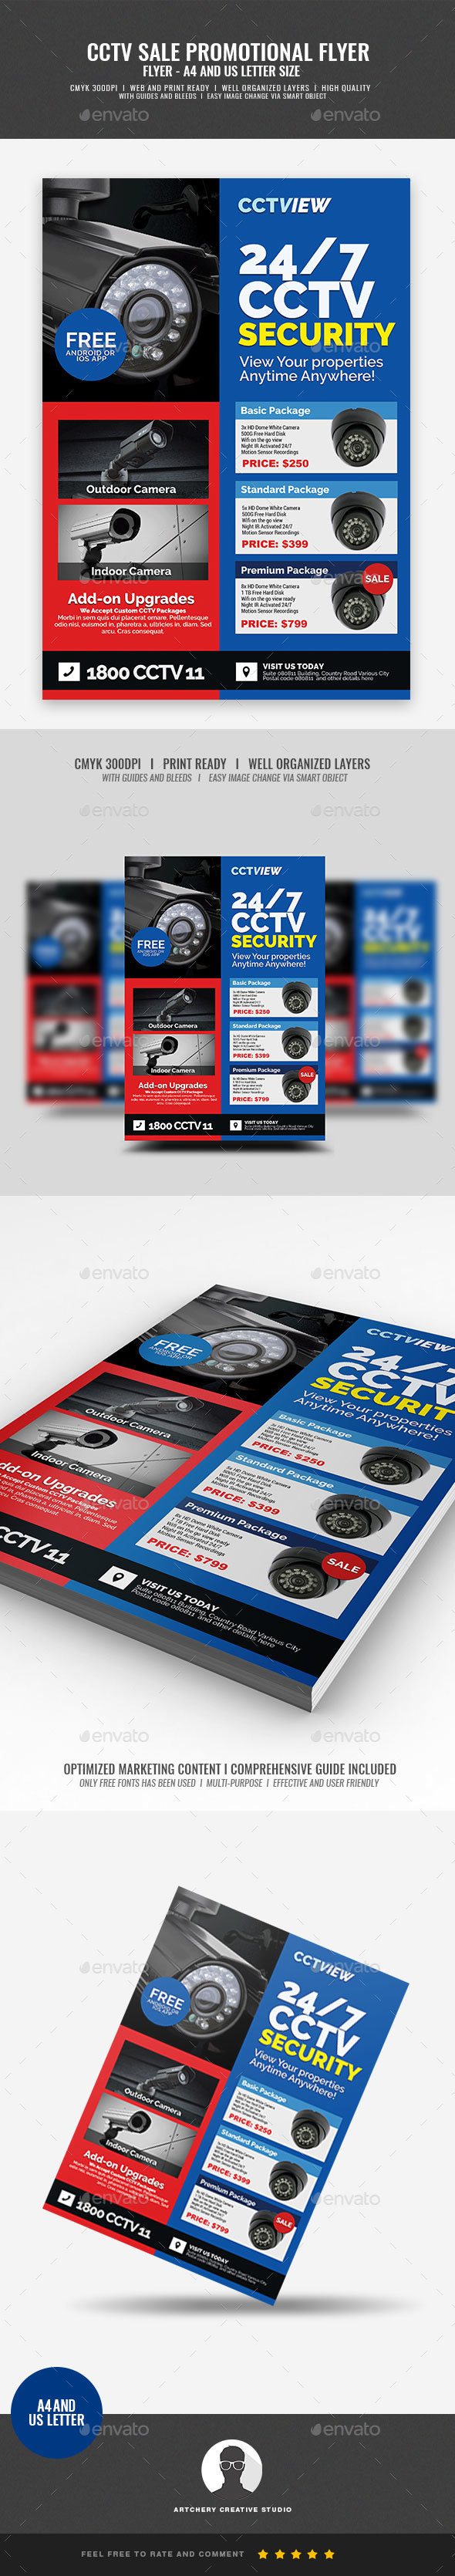 CCTV Package Deal Flyer - Corporate Flyers